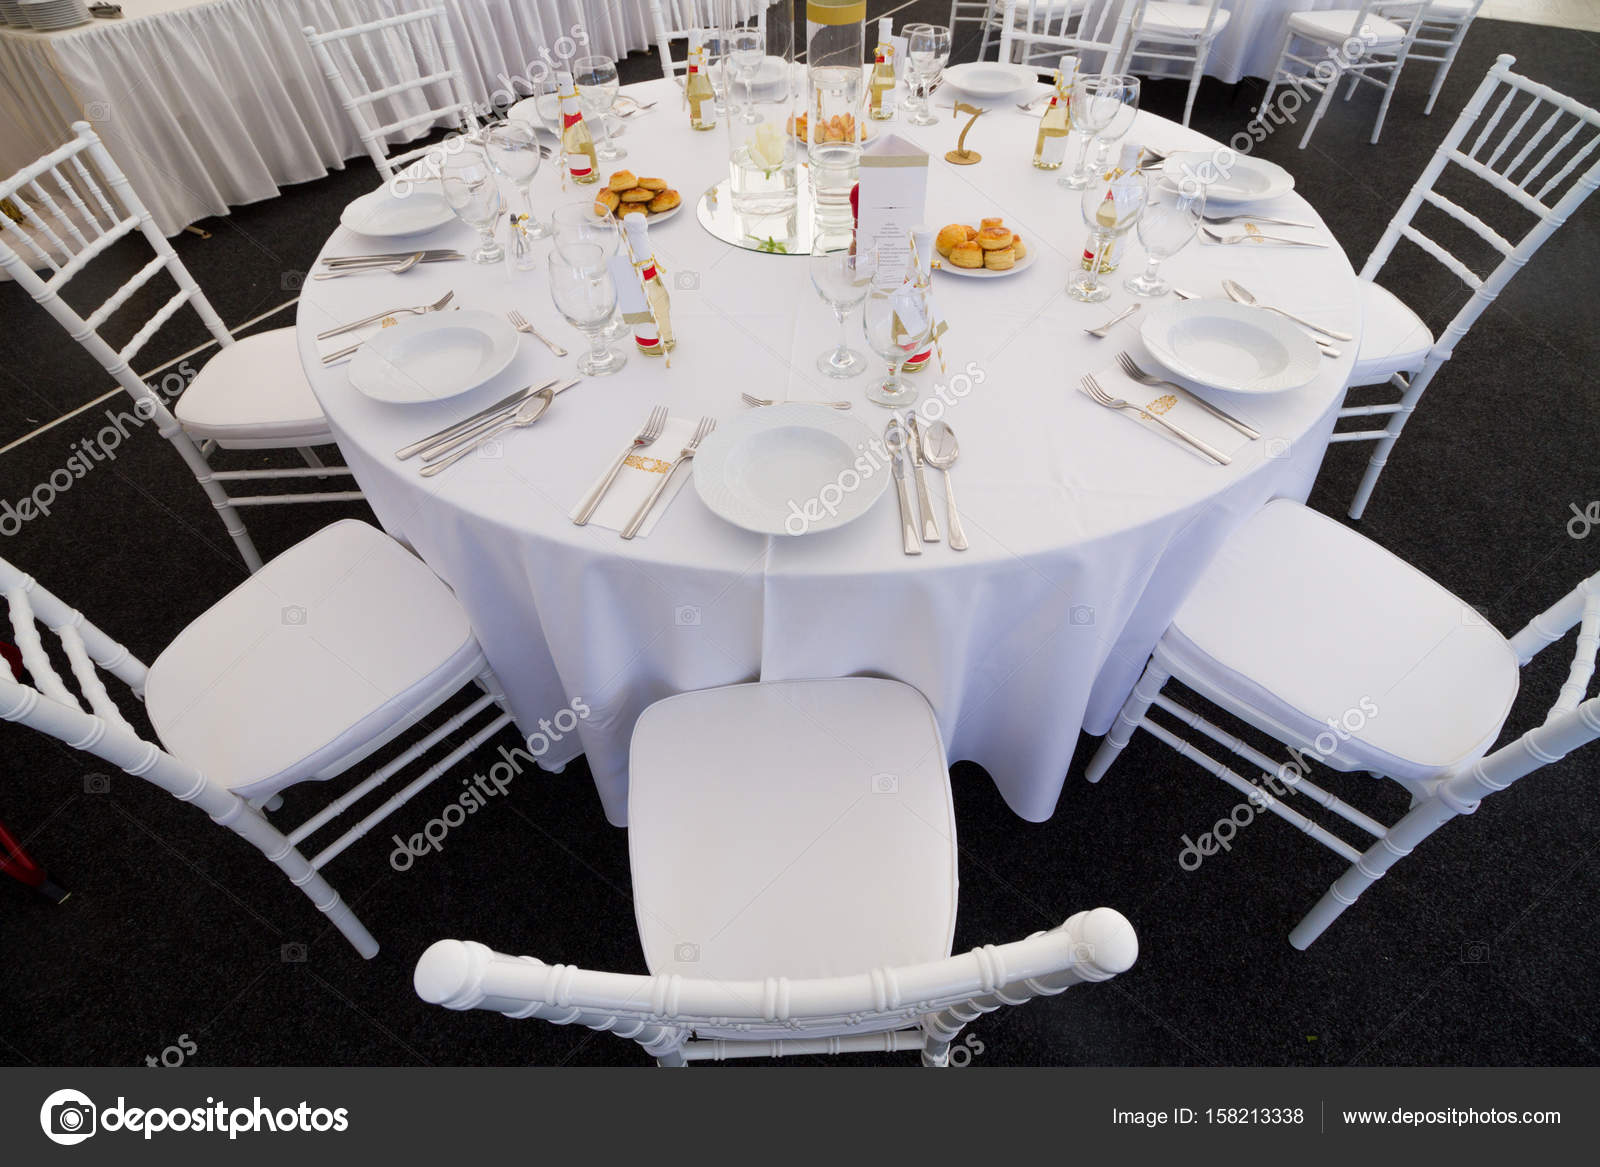 fancy table set for a wedding dinner — Stock Photo © ctvvelve #158213338